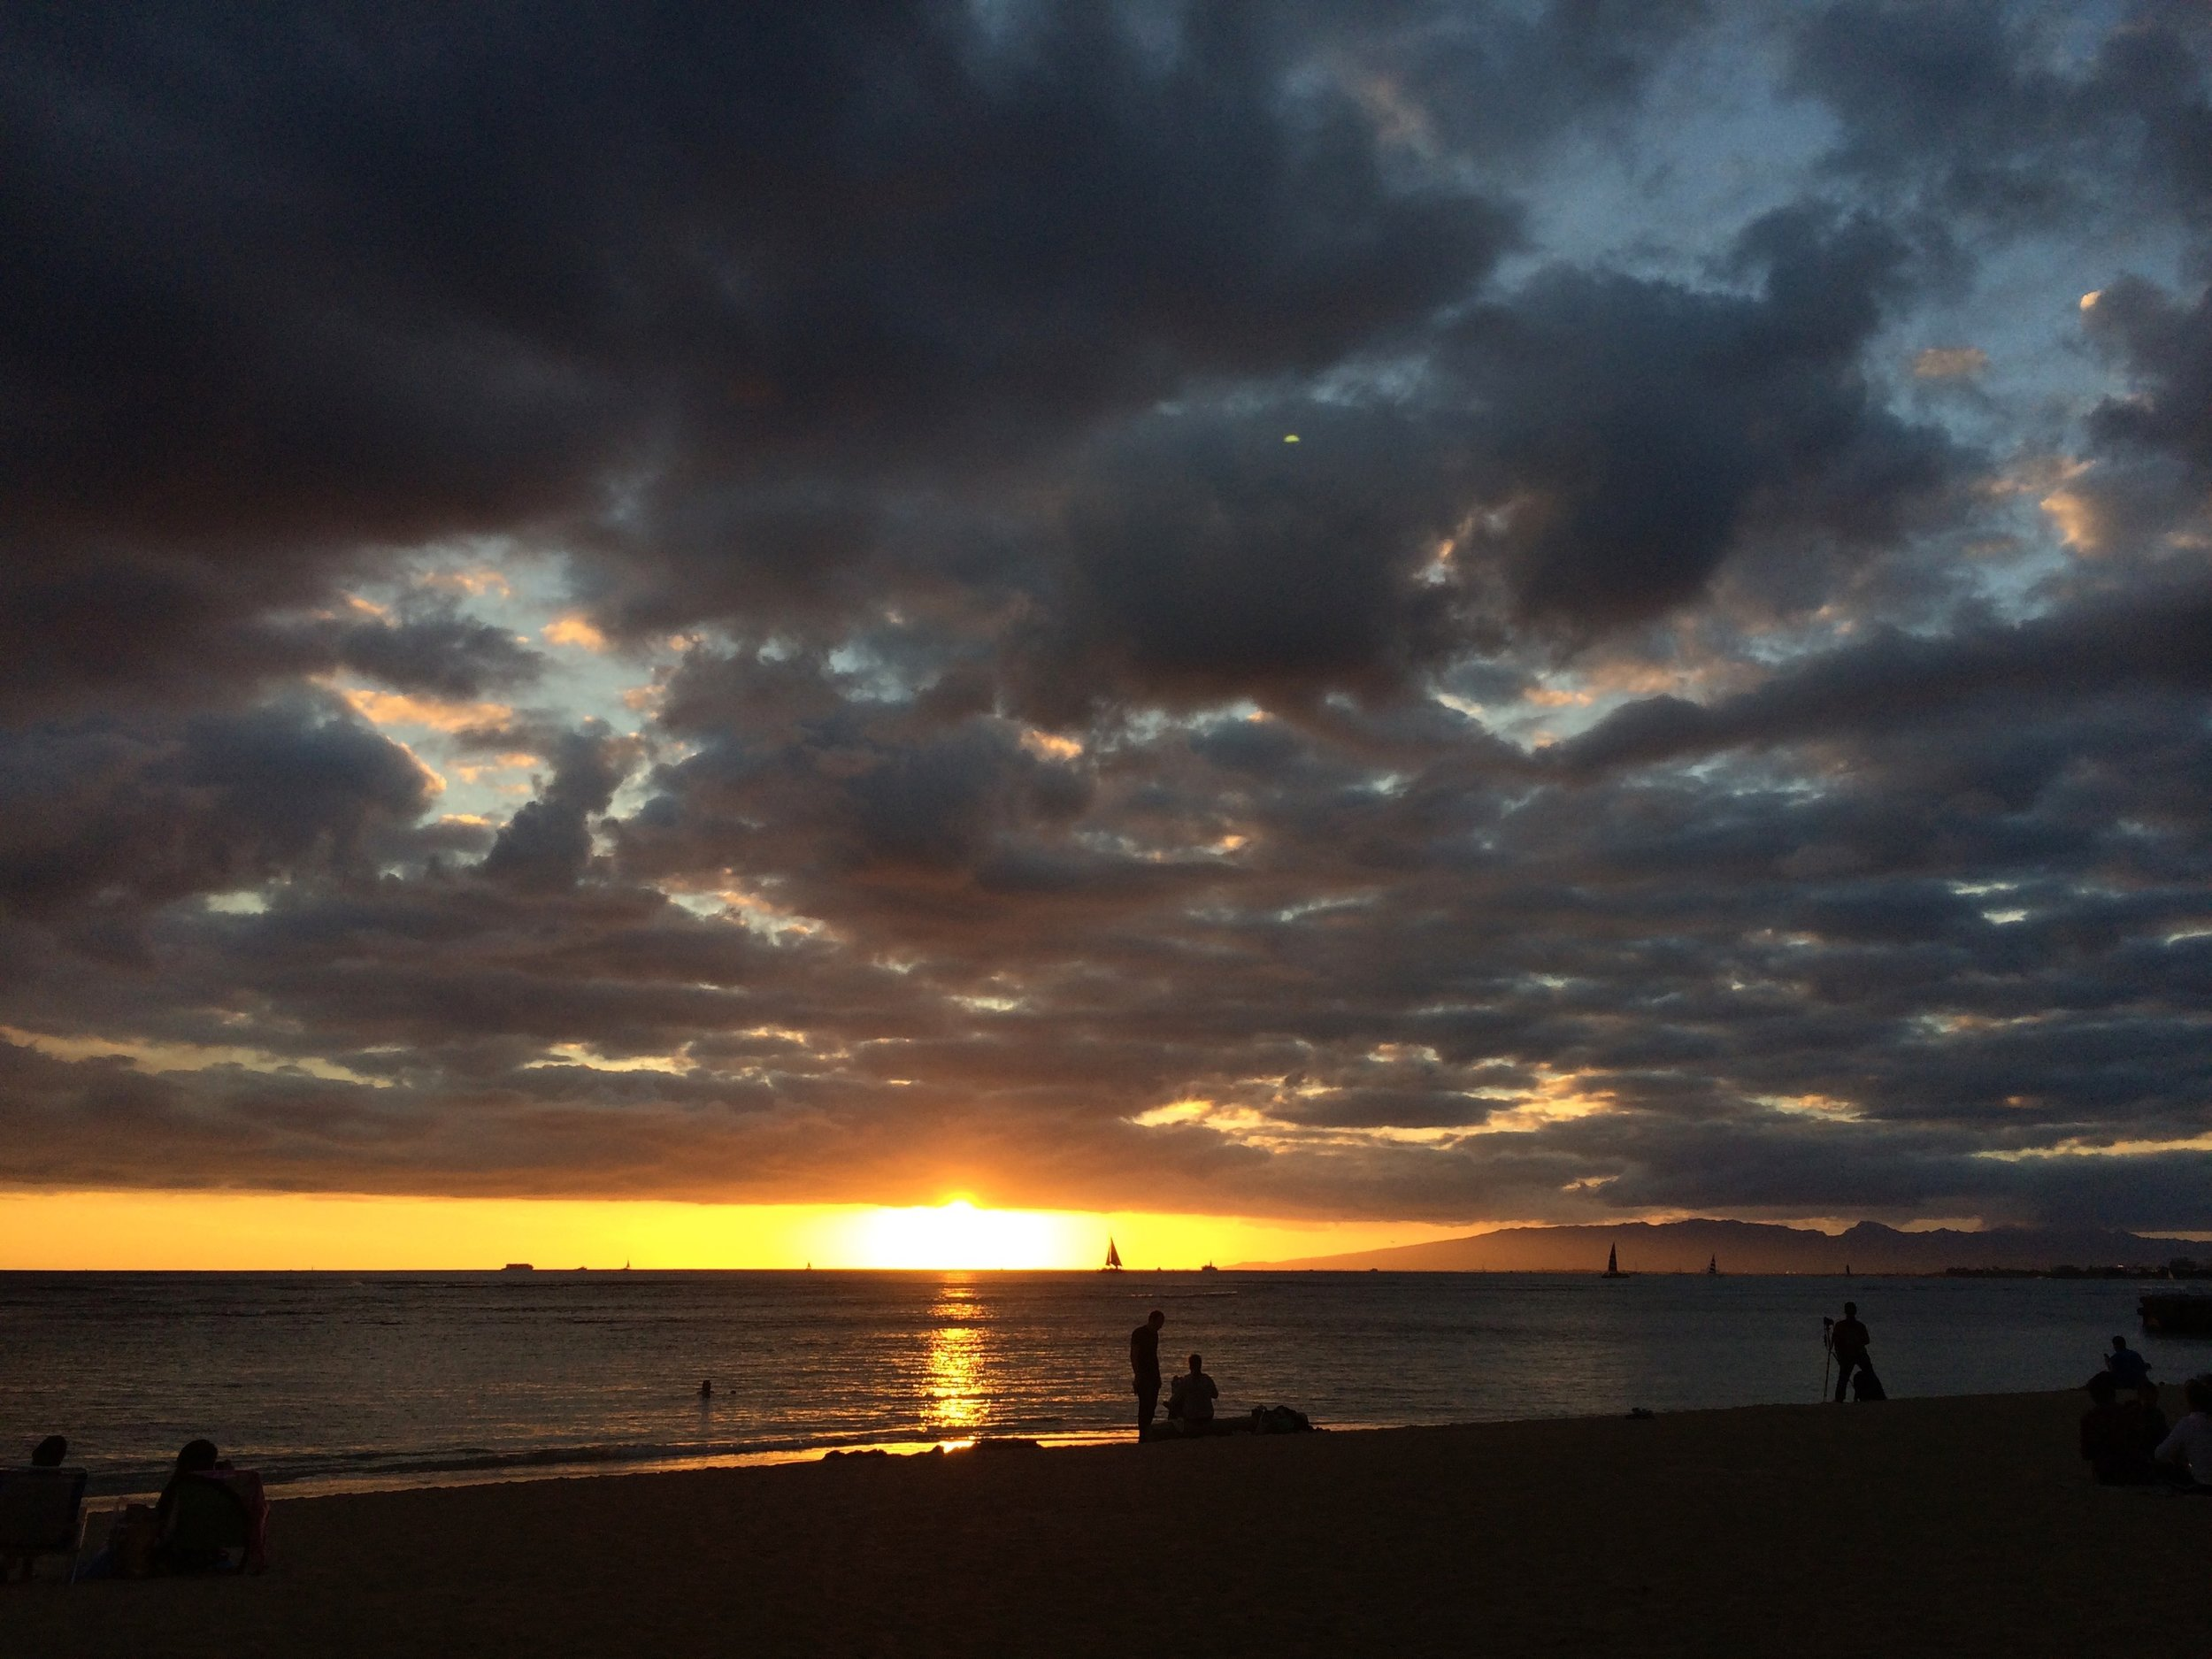 One of the many sunsets I got to enjoy on Kaimana beach while completing my PhD in Hawai'i